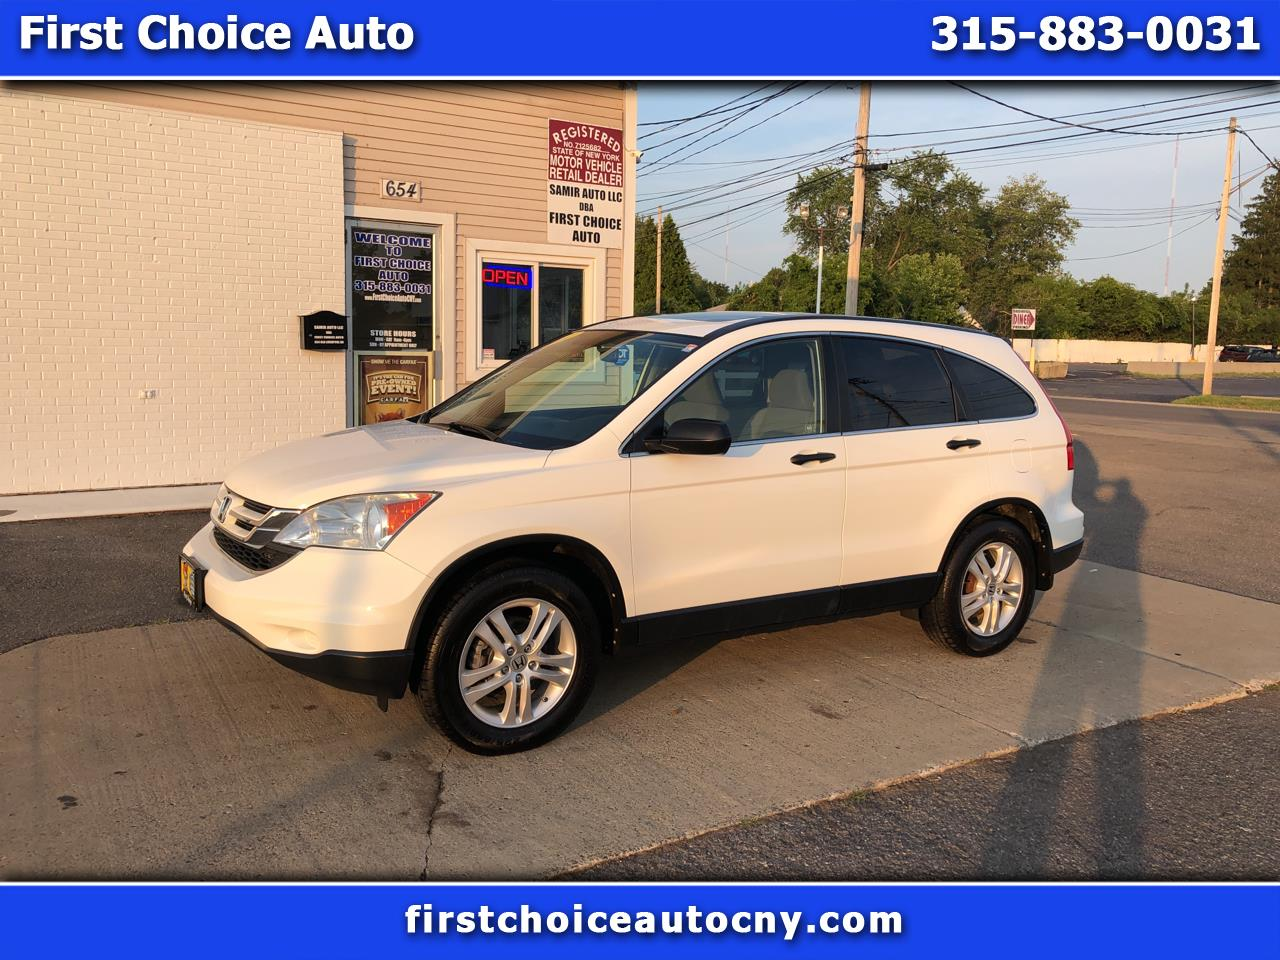 1St Choice Auto >> Used Cars For Sale Liverpool Ny 13088 First Choice Auto